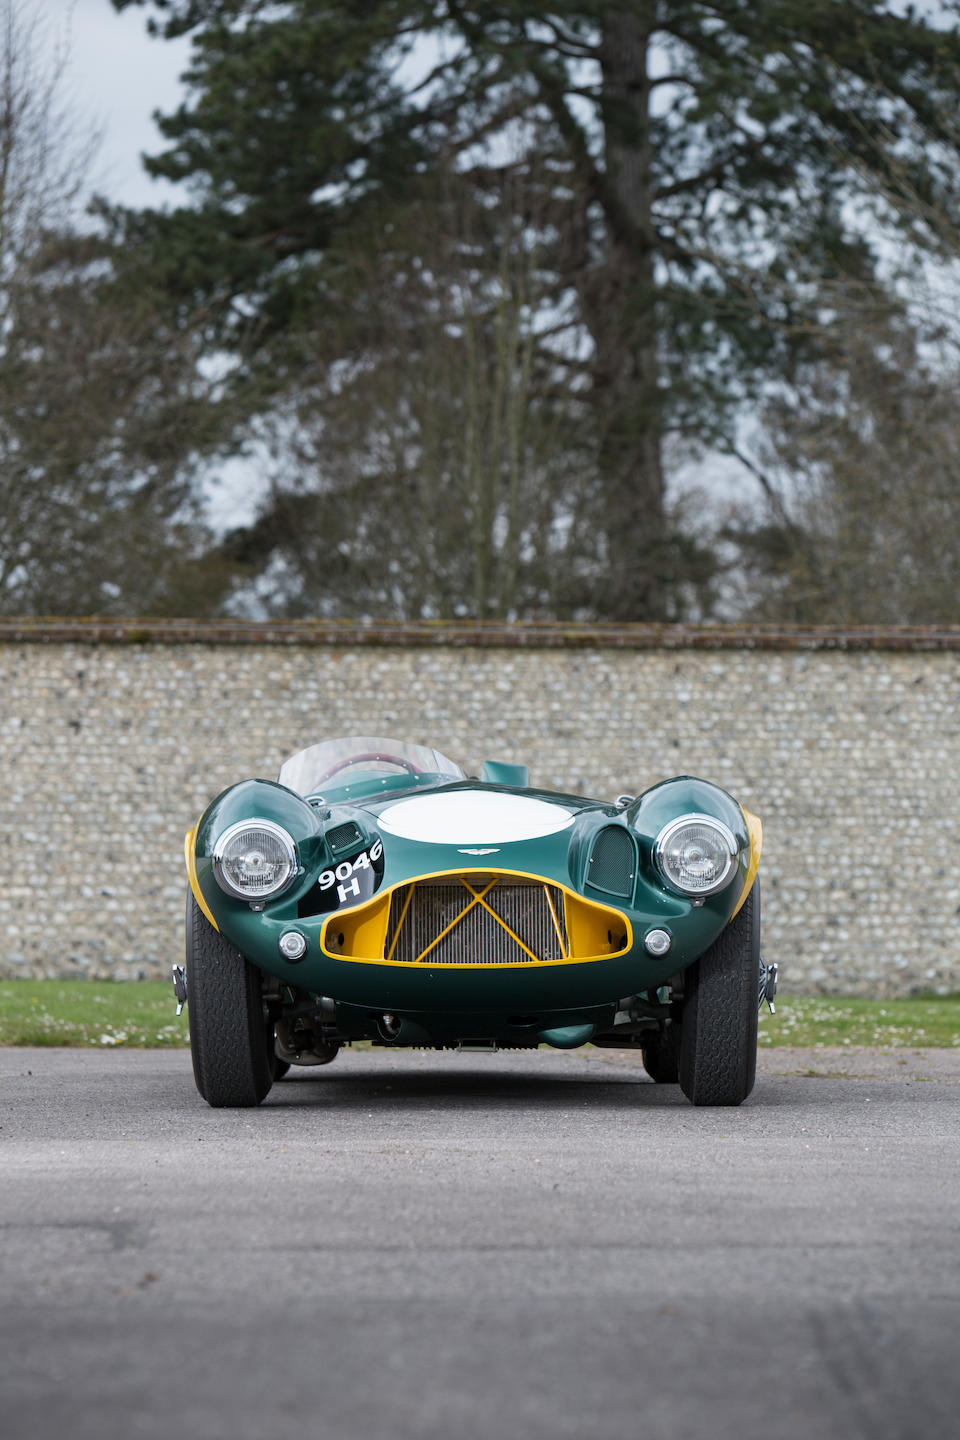 The Ex-Sir David Brown, Sir Stirling Moss, Peter Collins,  Tony Brooks, Roy Salvadori, Reg Parnell, Graham Hill,1953 Aston Martin DB3S Sports-Racing Two-Seater  Chassis no. DB3S/5